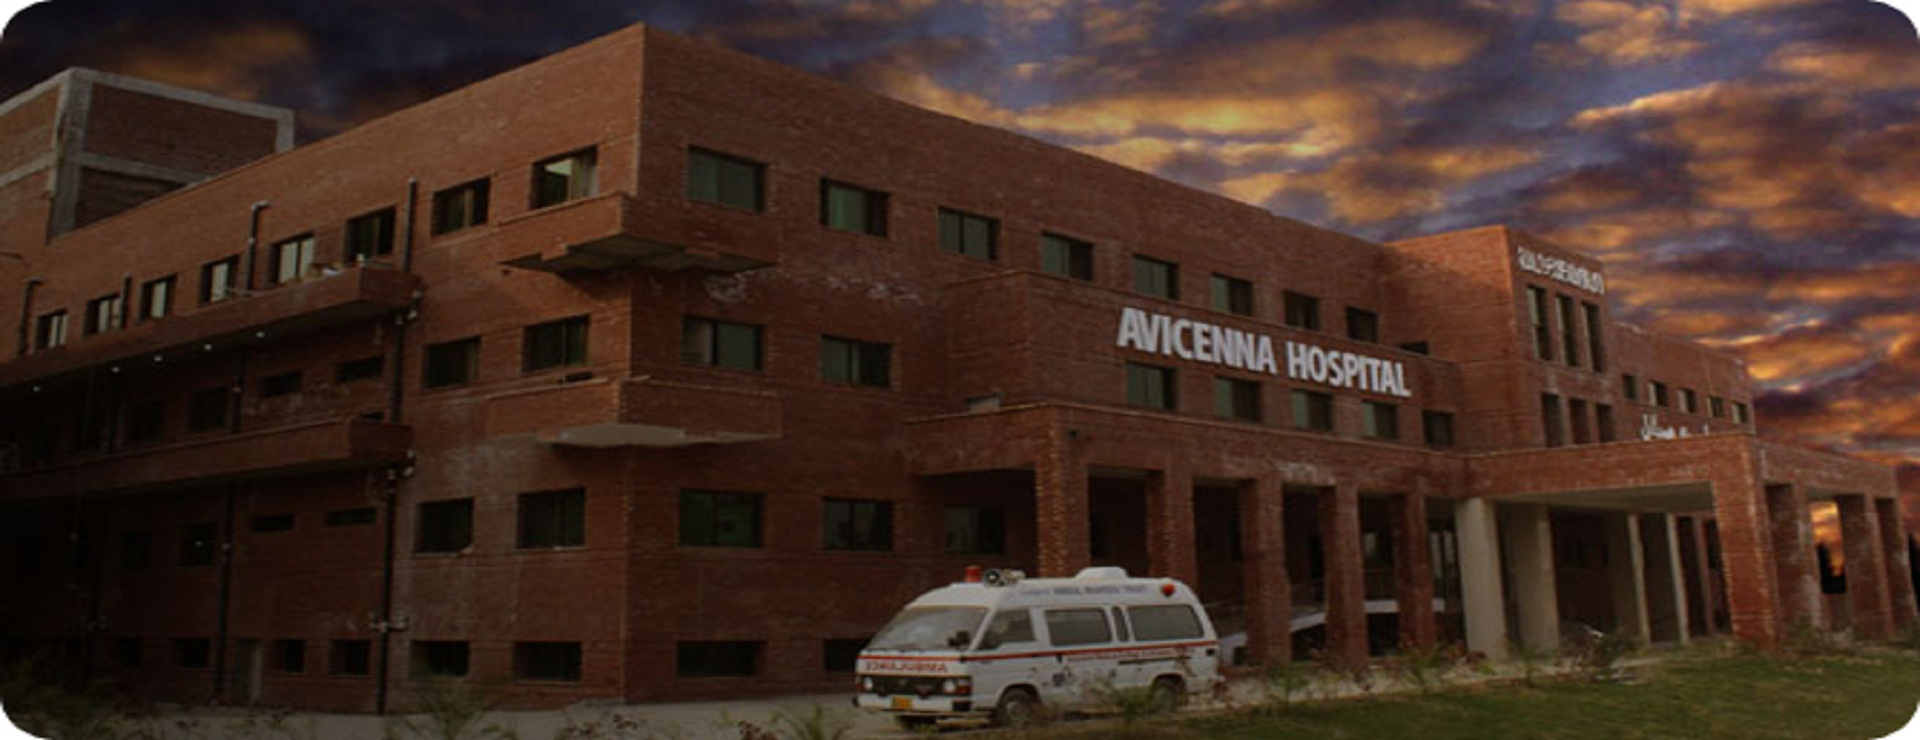 Avicenna medical college and hospital view